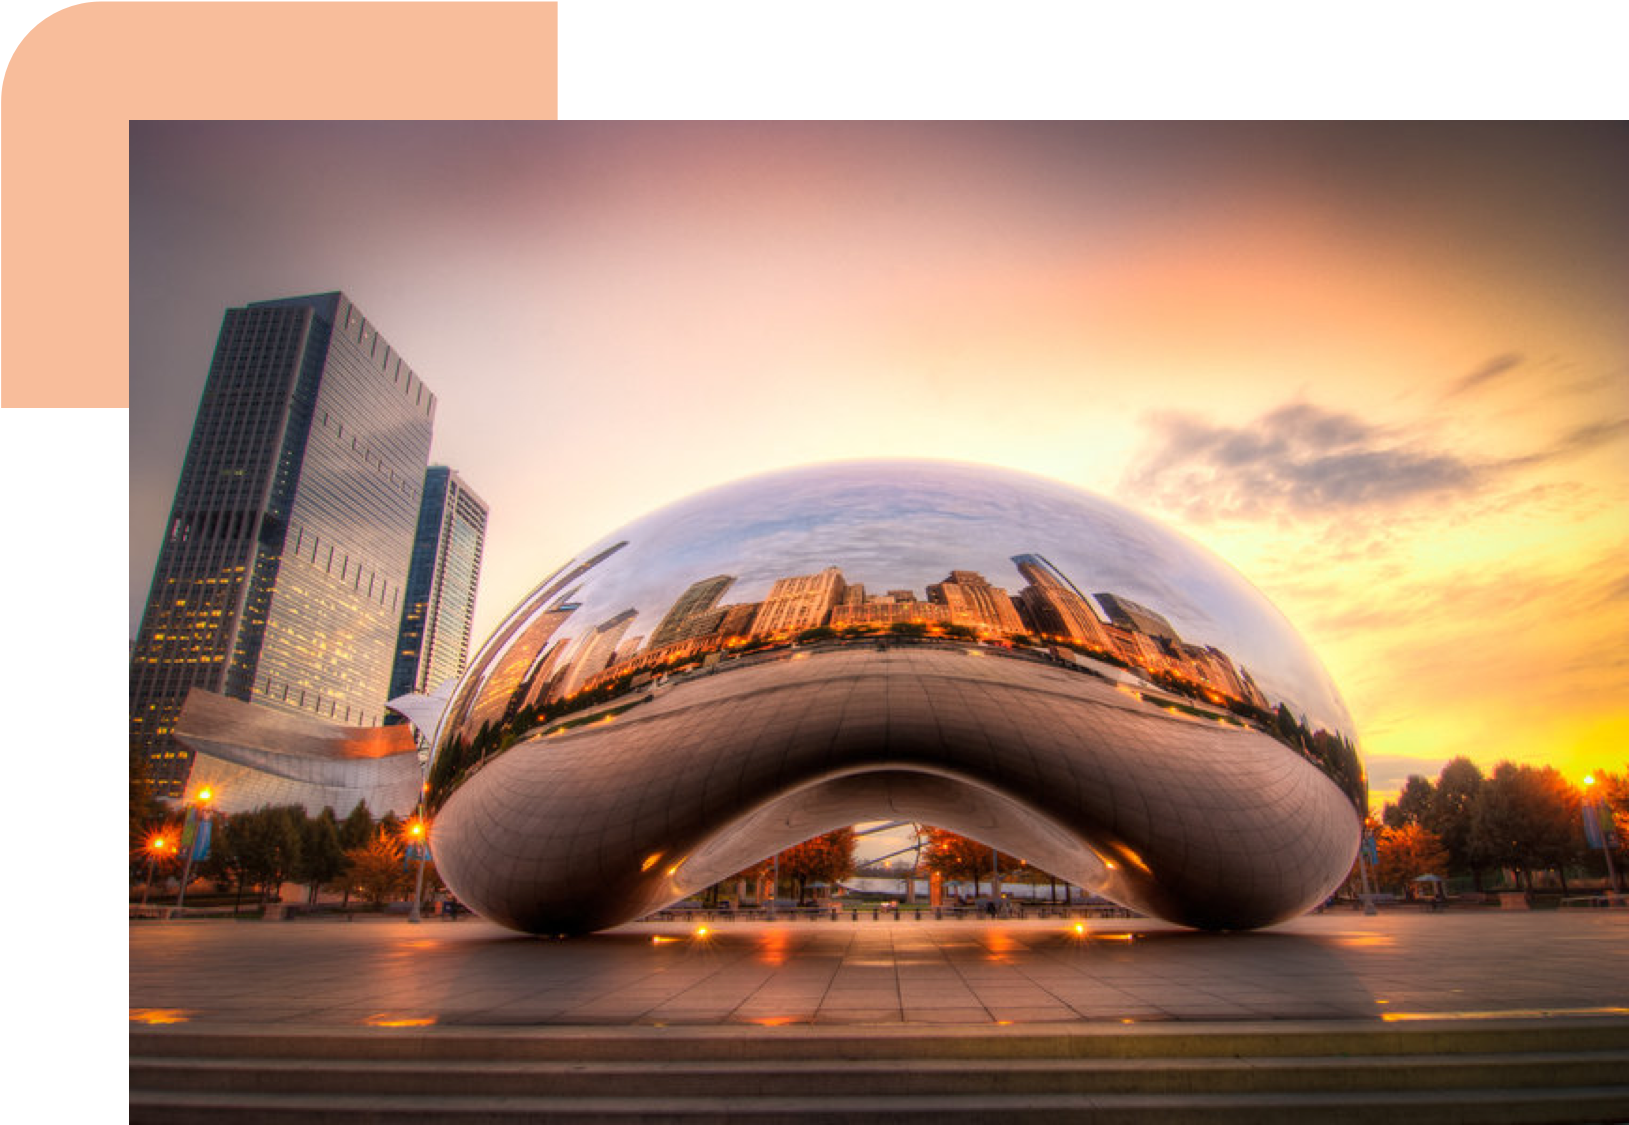 Chicago transparent bean. About us tangocode developing